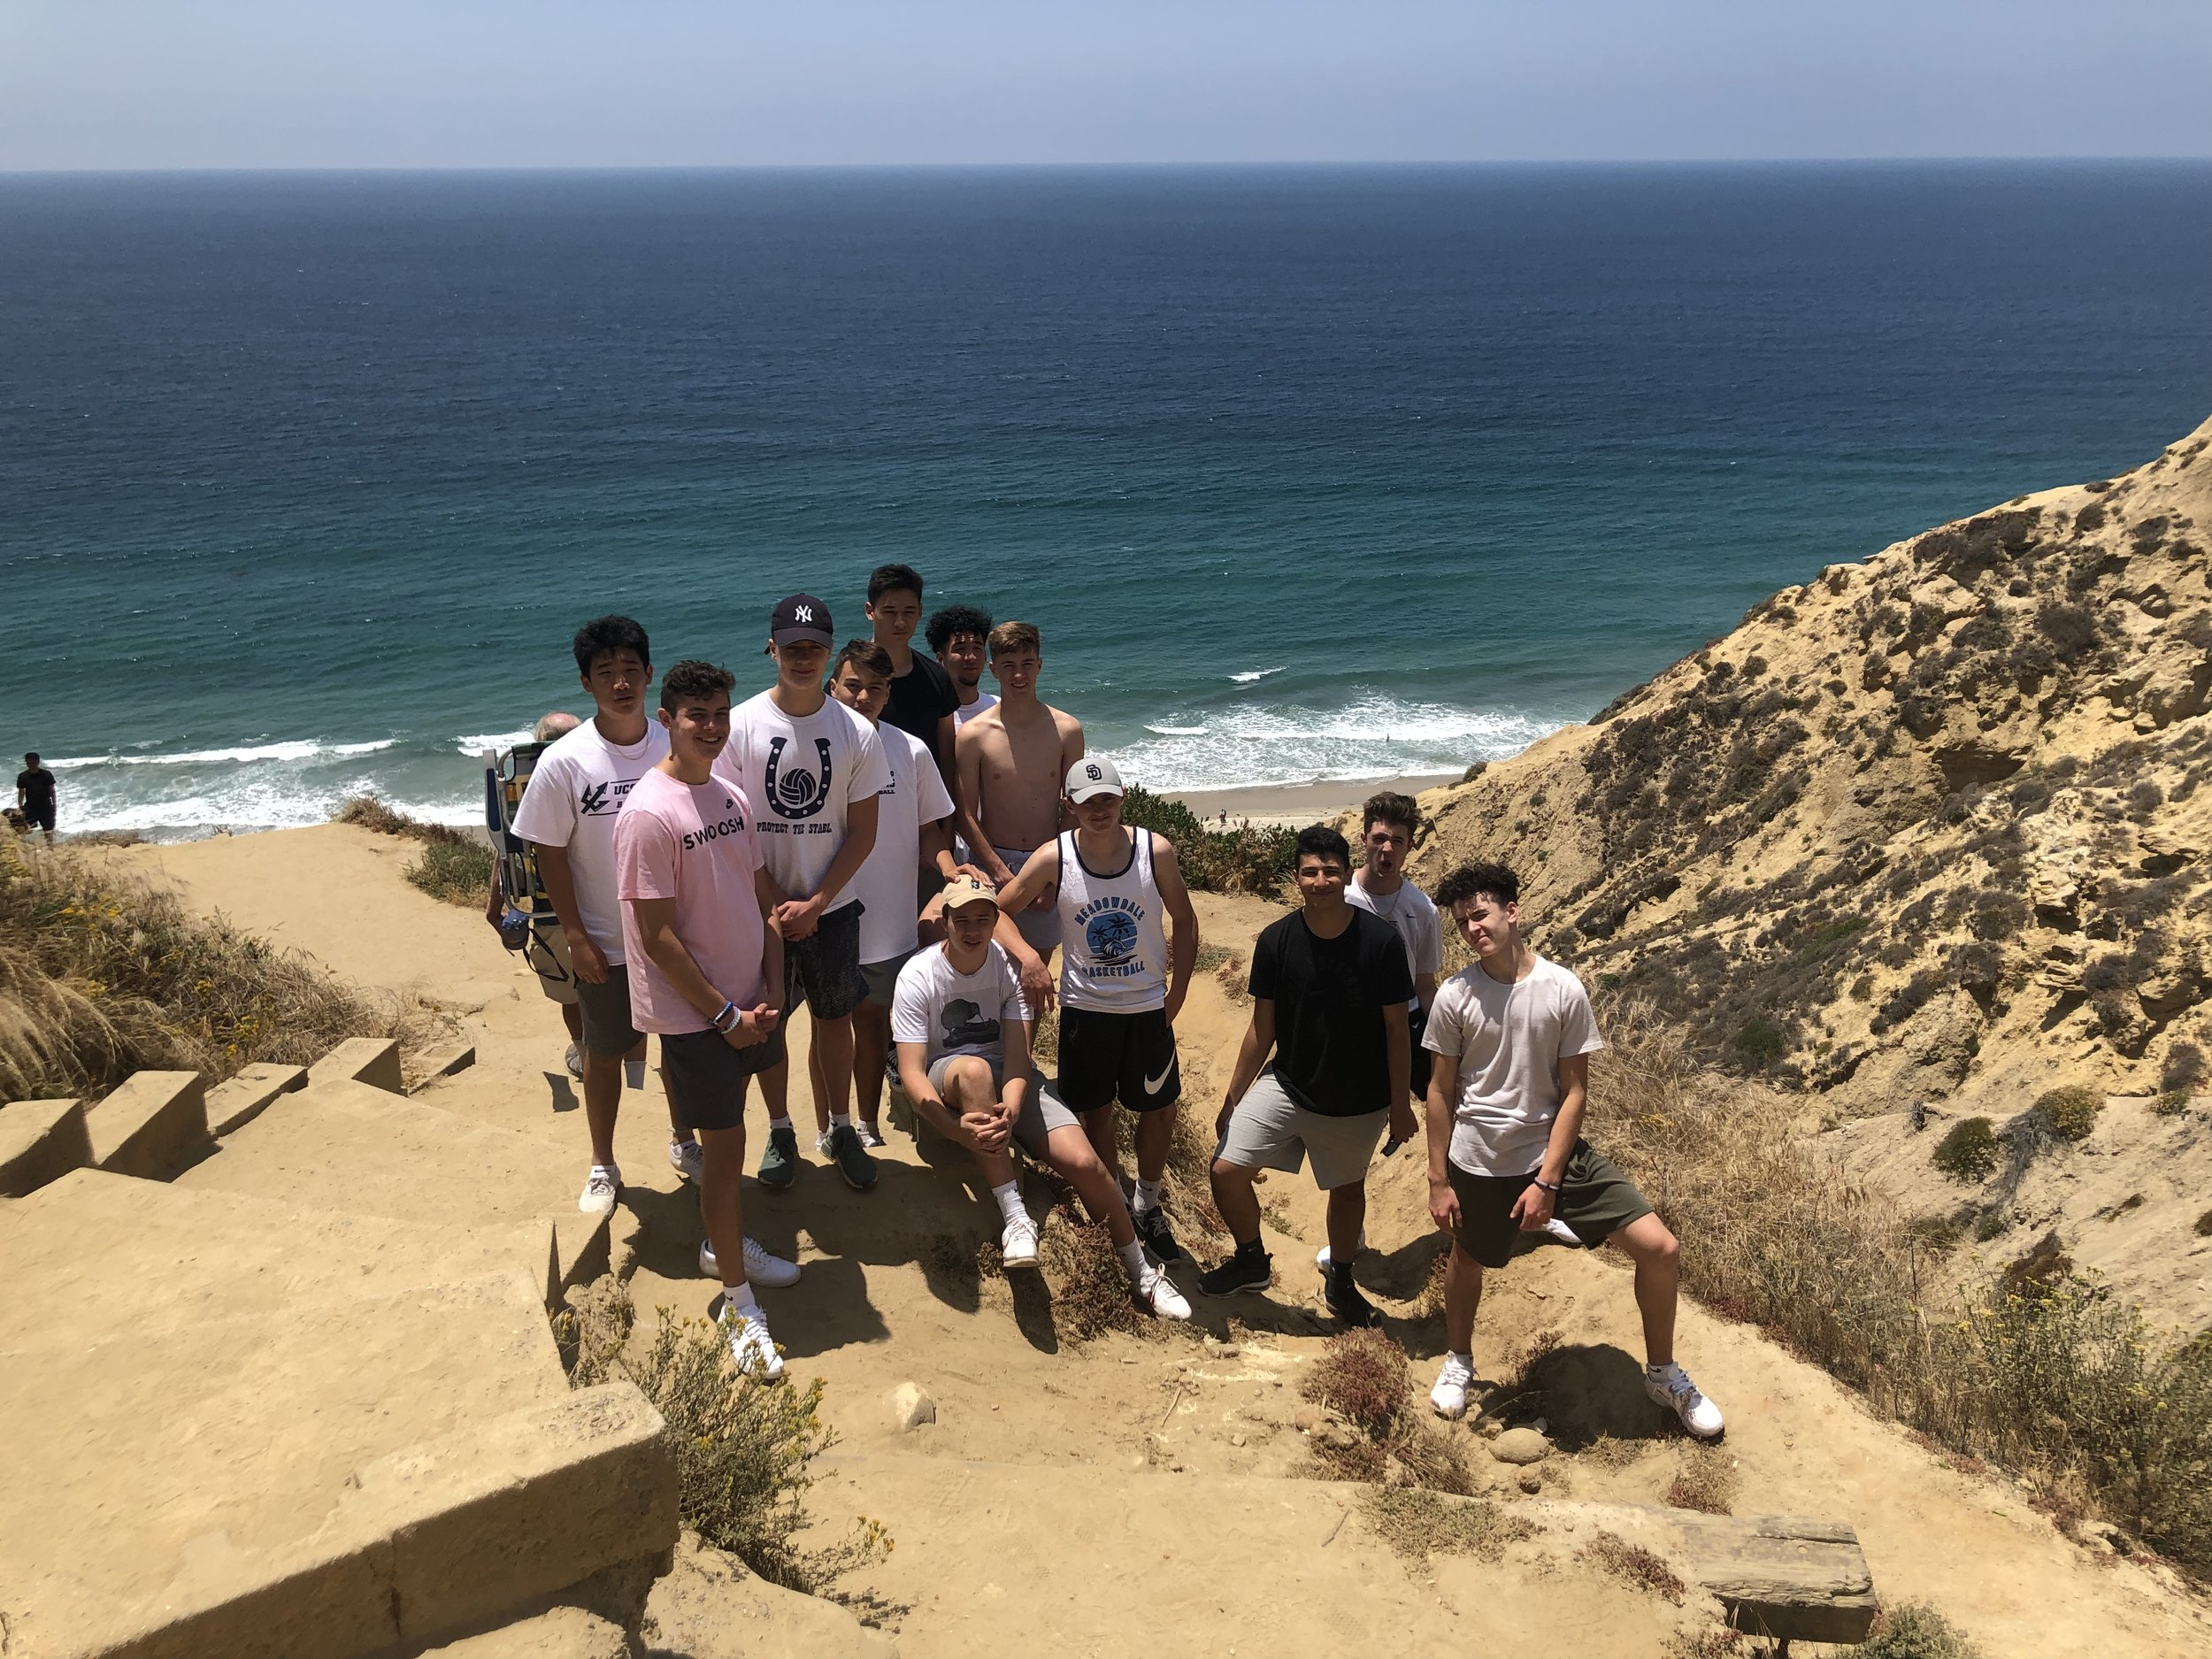 SUN: Great view at Black's Beach in La Jolla while Coach Streit goes Hang-Gliding